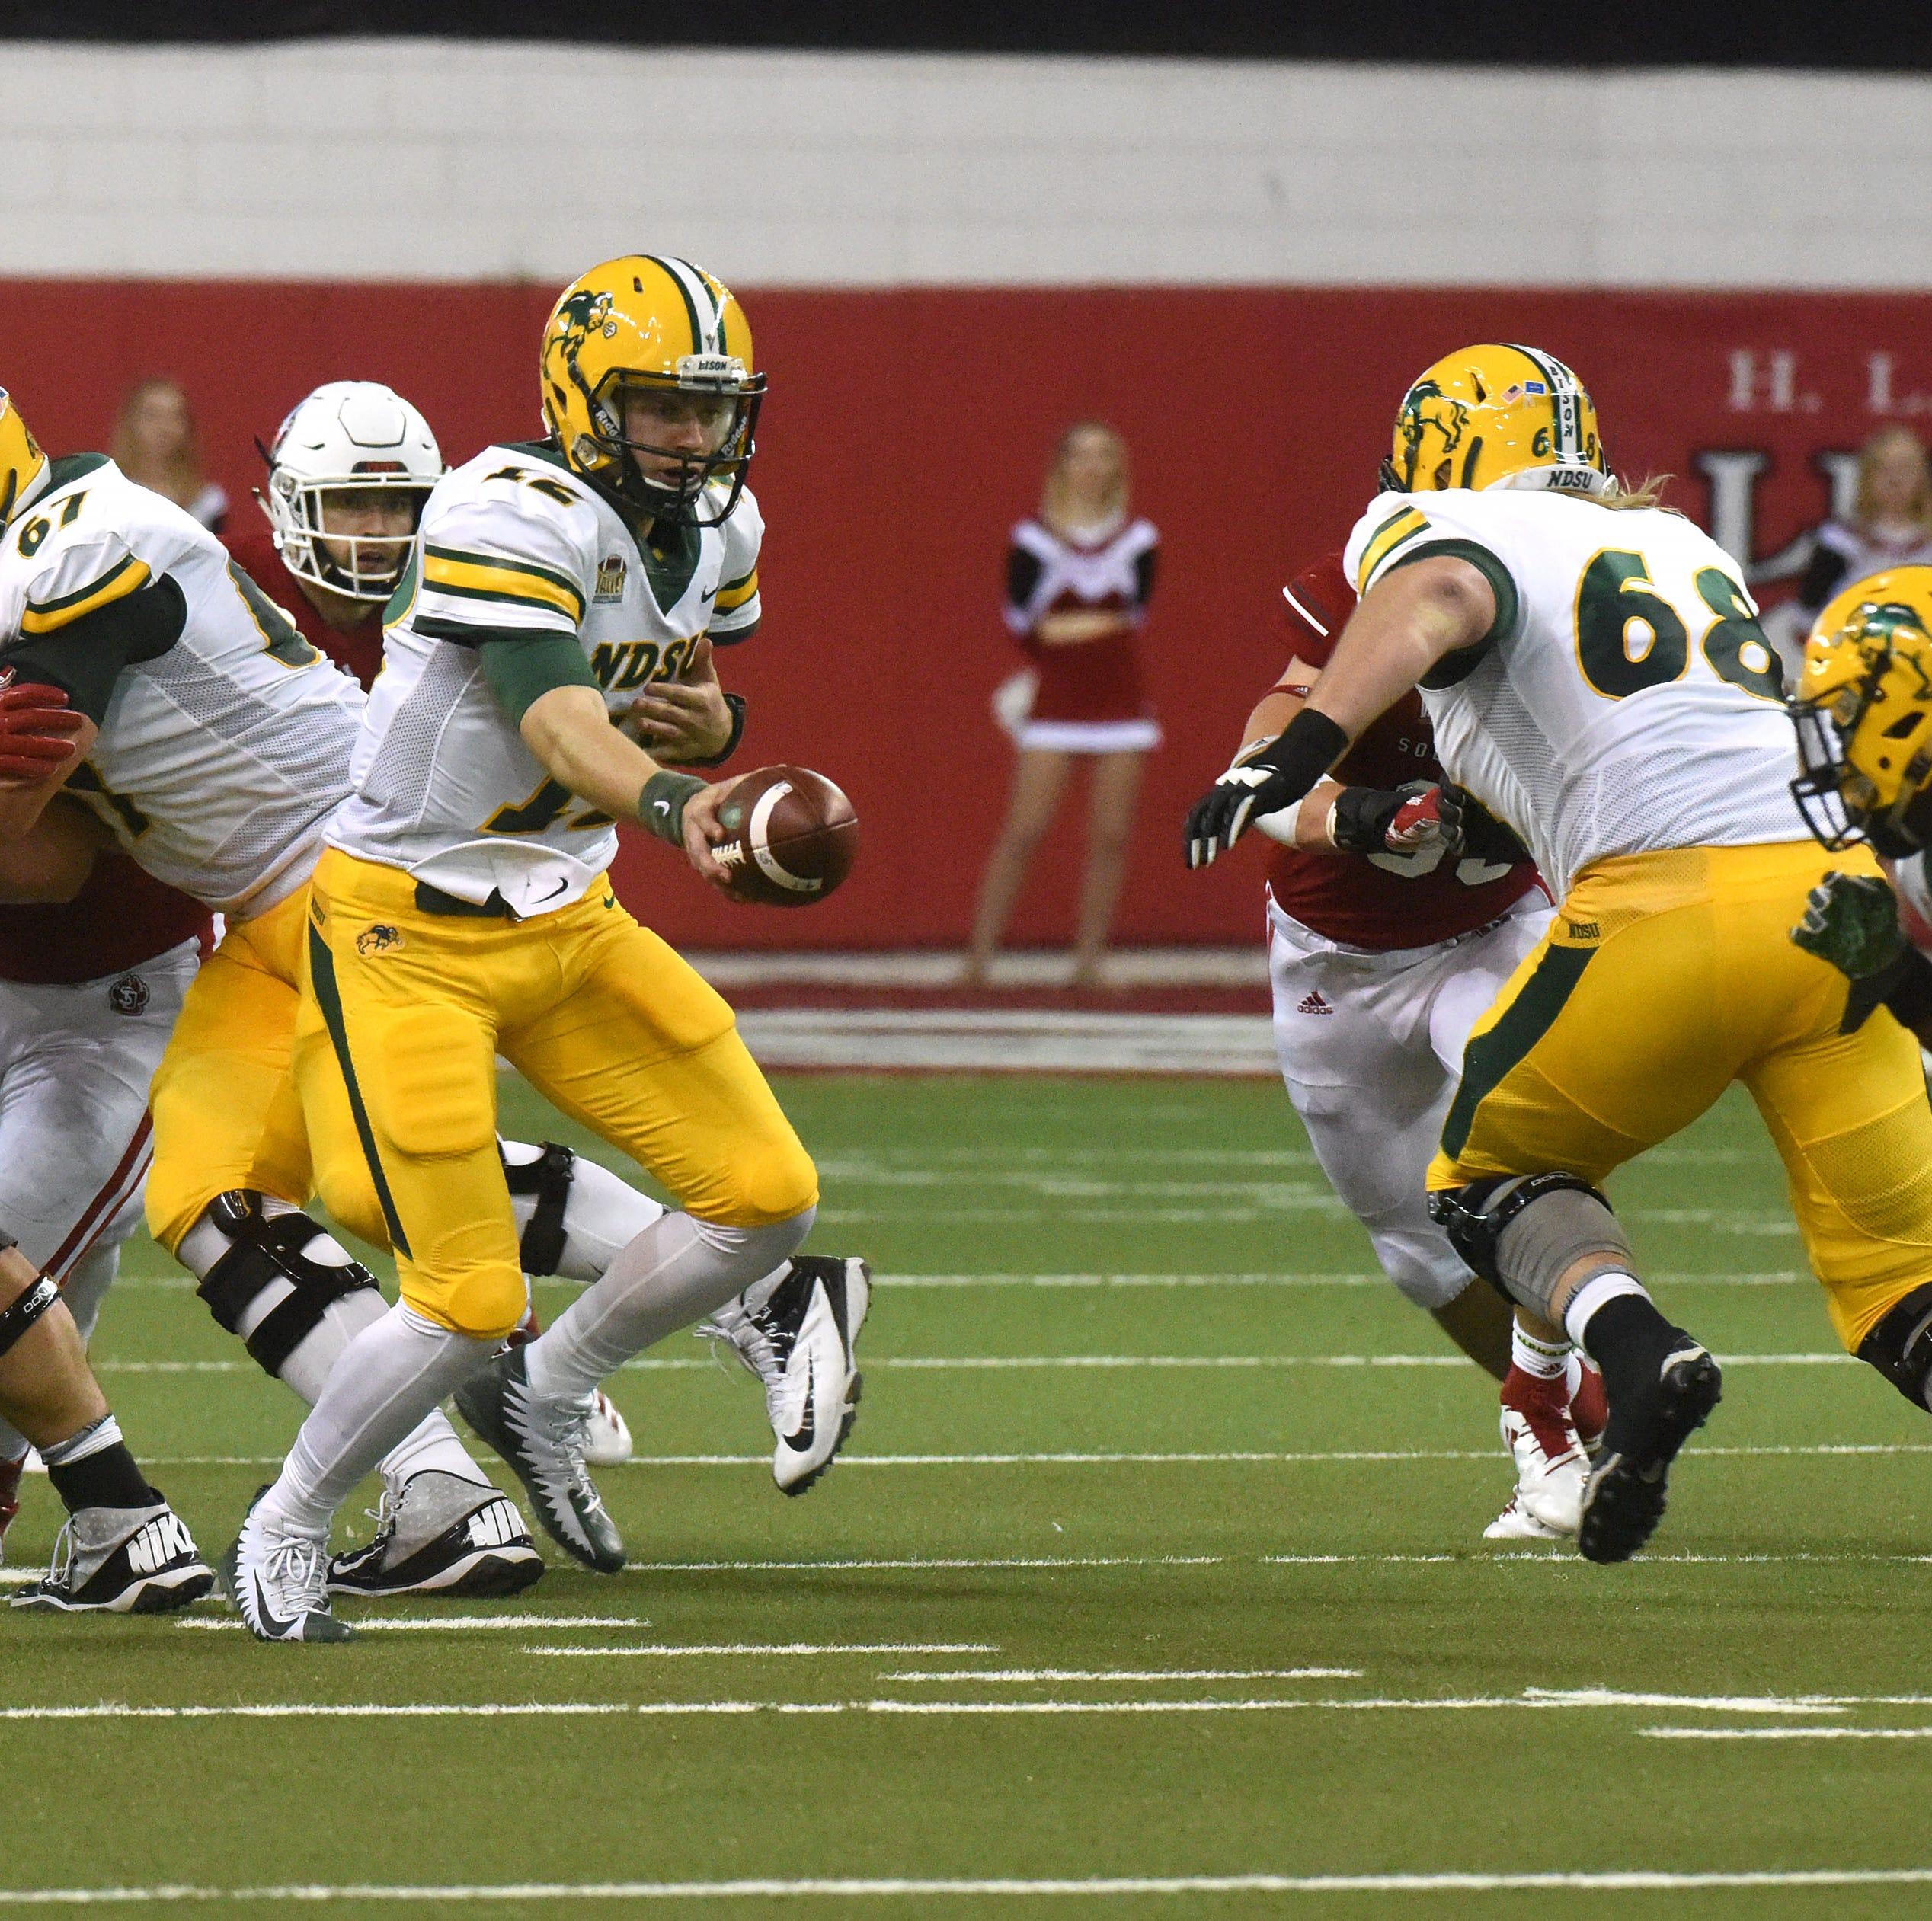 North Dakota State's Easton Stick (12) goes to hand the ball off during a game against University of South Dakota in Vermillion, S.D., Saturday, Oct. 27, 2018.